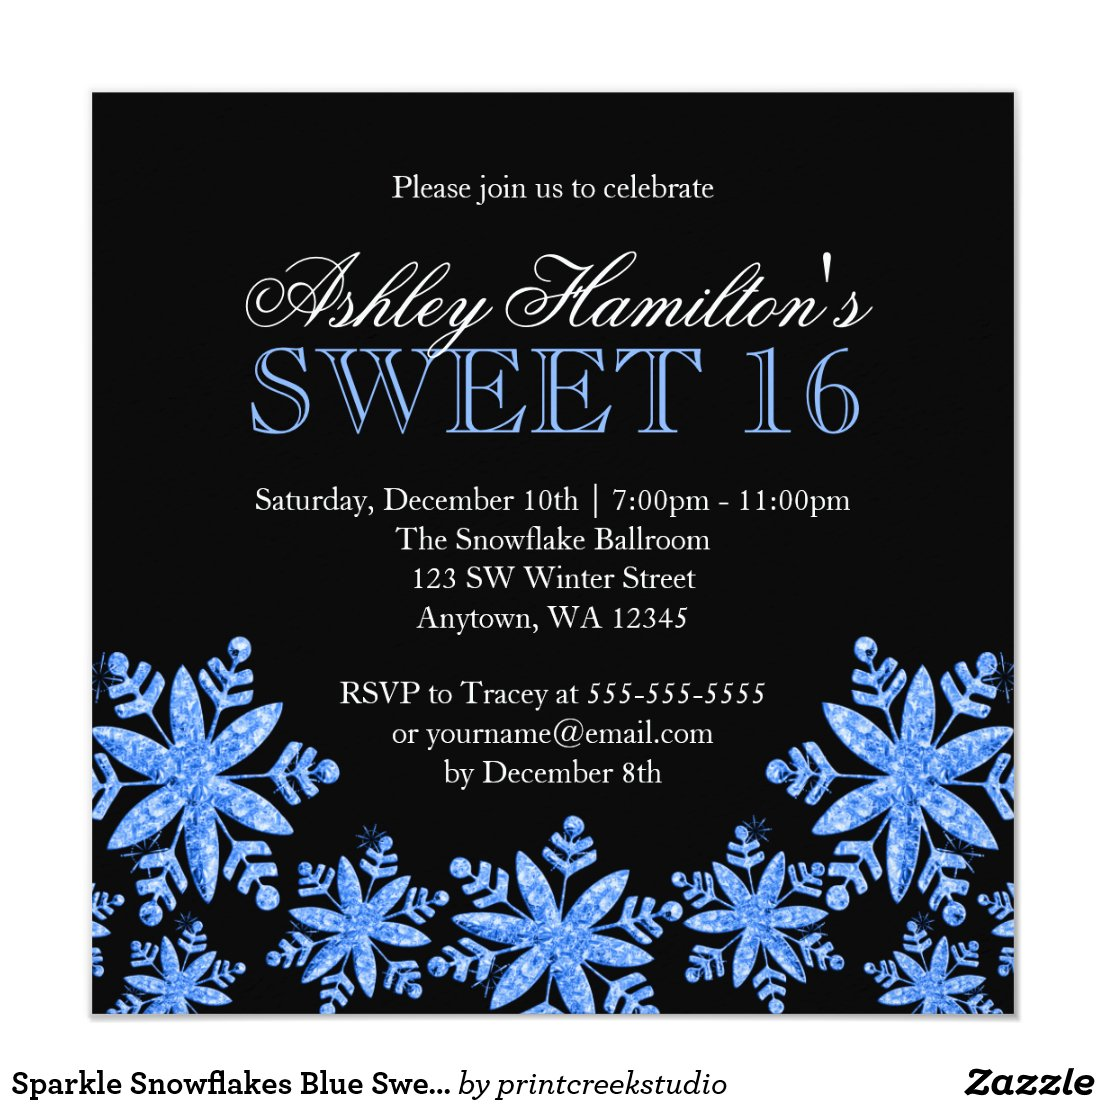 Sparkle Snowflakes Blue Sweet 16 Winter Wonderland Invitation